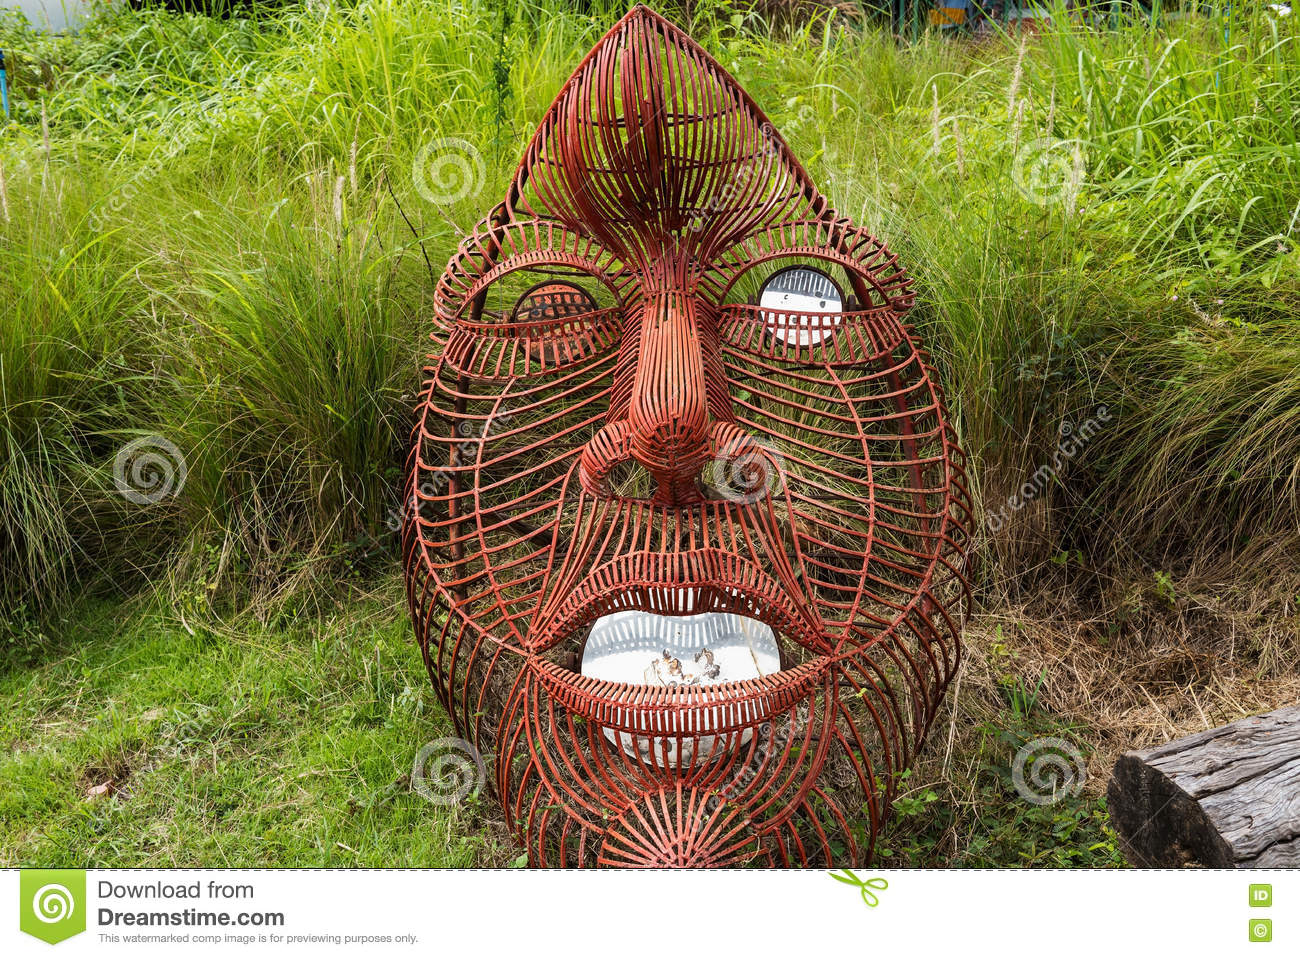 Big Red Iron Face At Garden Stock Image - Image of robot, background ...